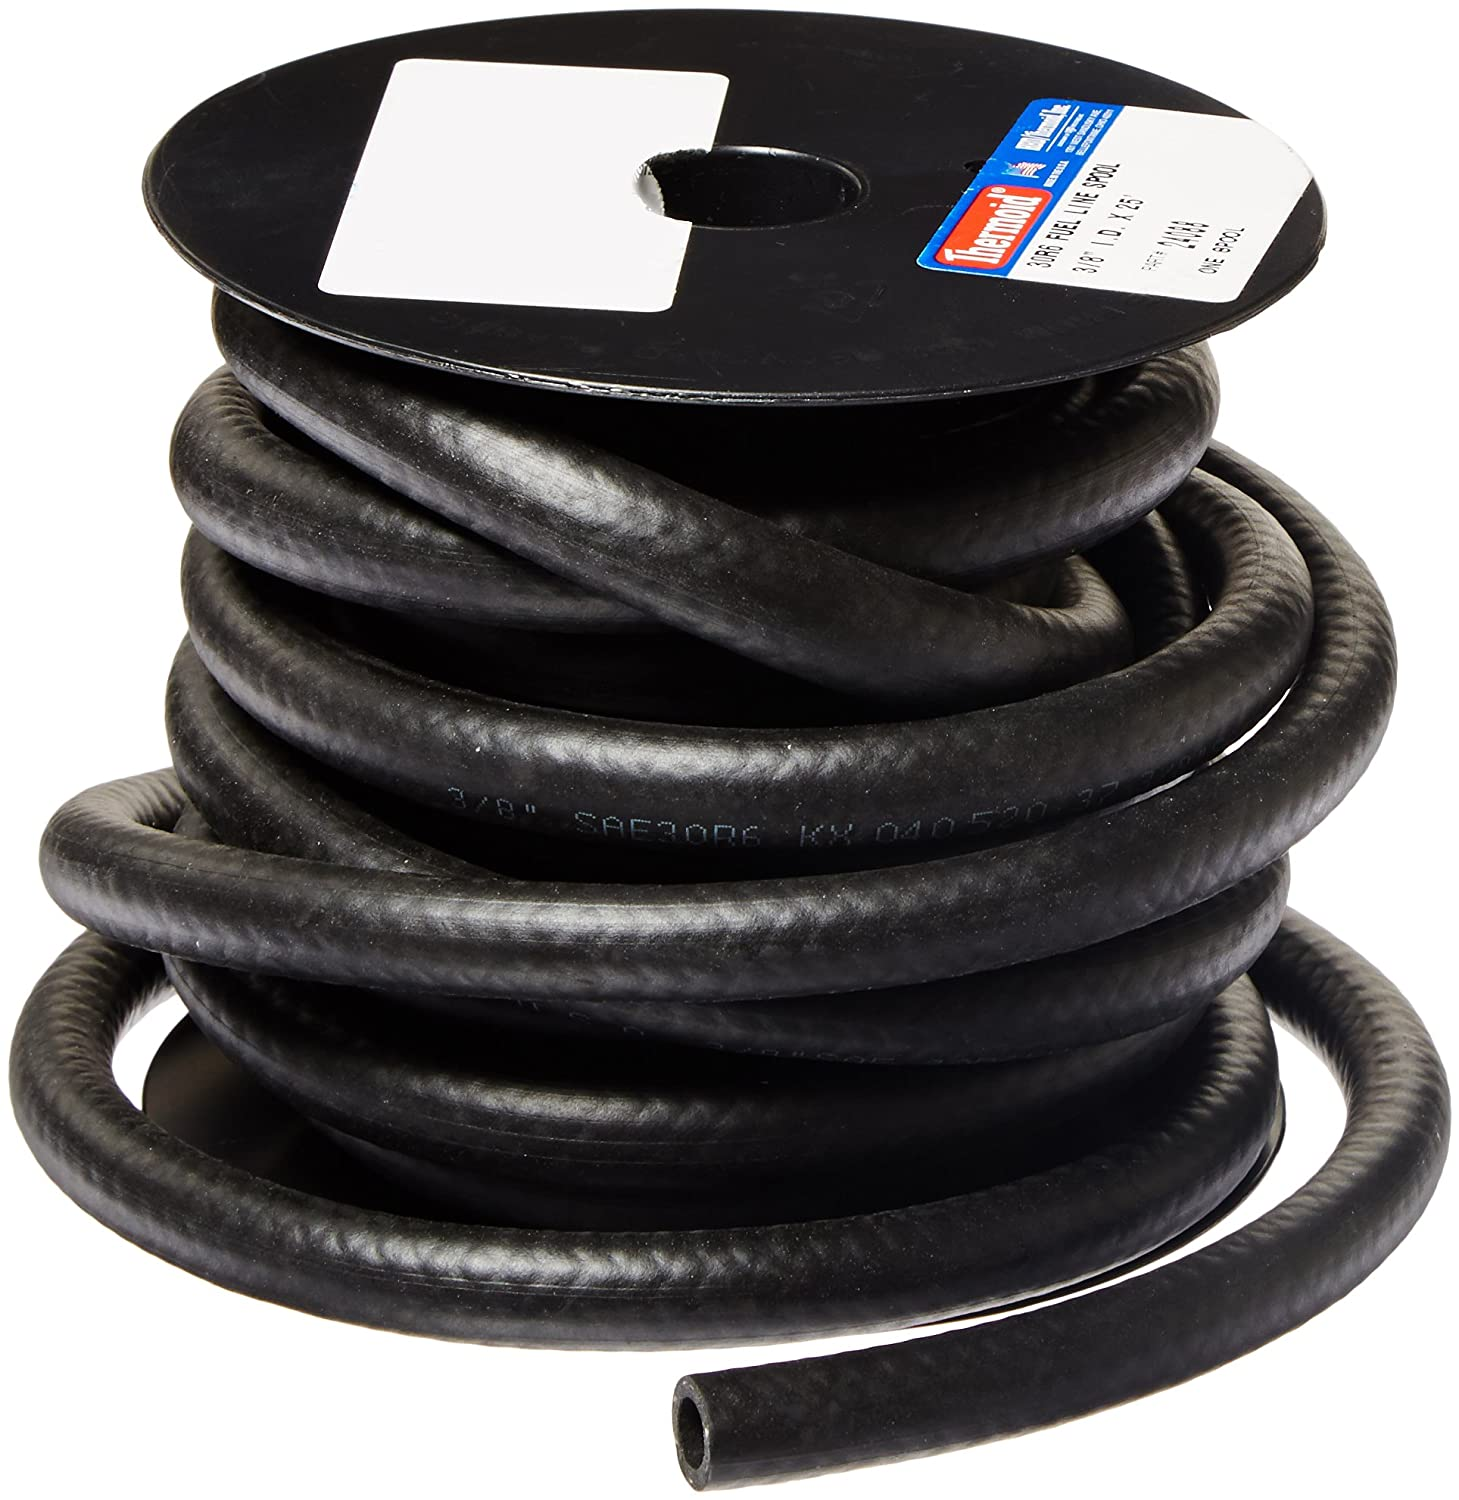 Amazon.com HBD Thermoid NBR/PVC SAE30R6 Fuel Line Hose 3/8  x 25u0027 Length 0.375  ID Black Industrial u0026 Scientific  sc 1 st  Amazon.com & Amazon.com: HBD Thermoid NBR/PVC SAE30R6 Fuel Line Hose 3/8